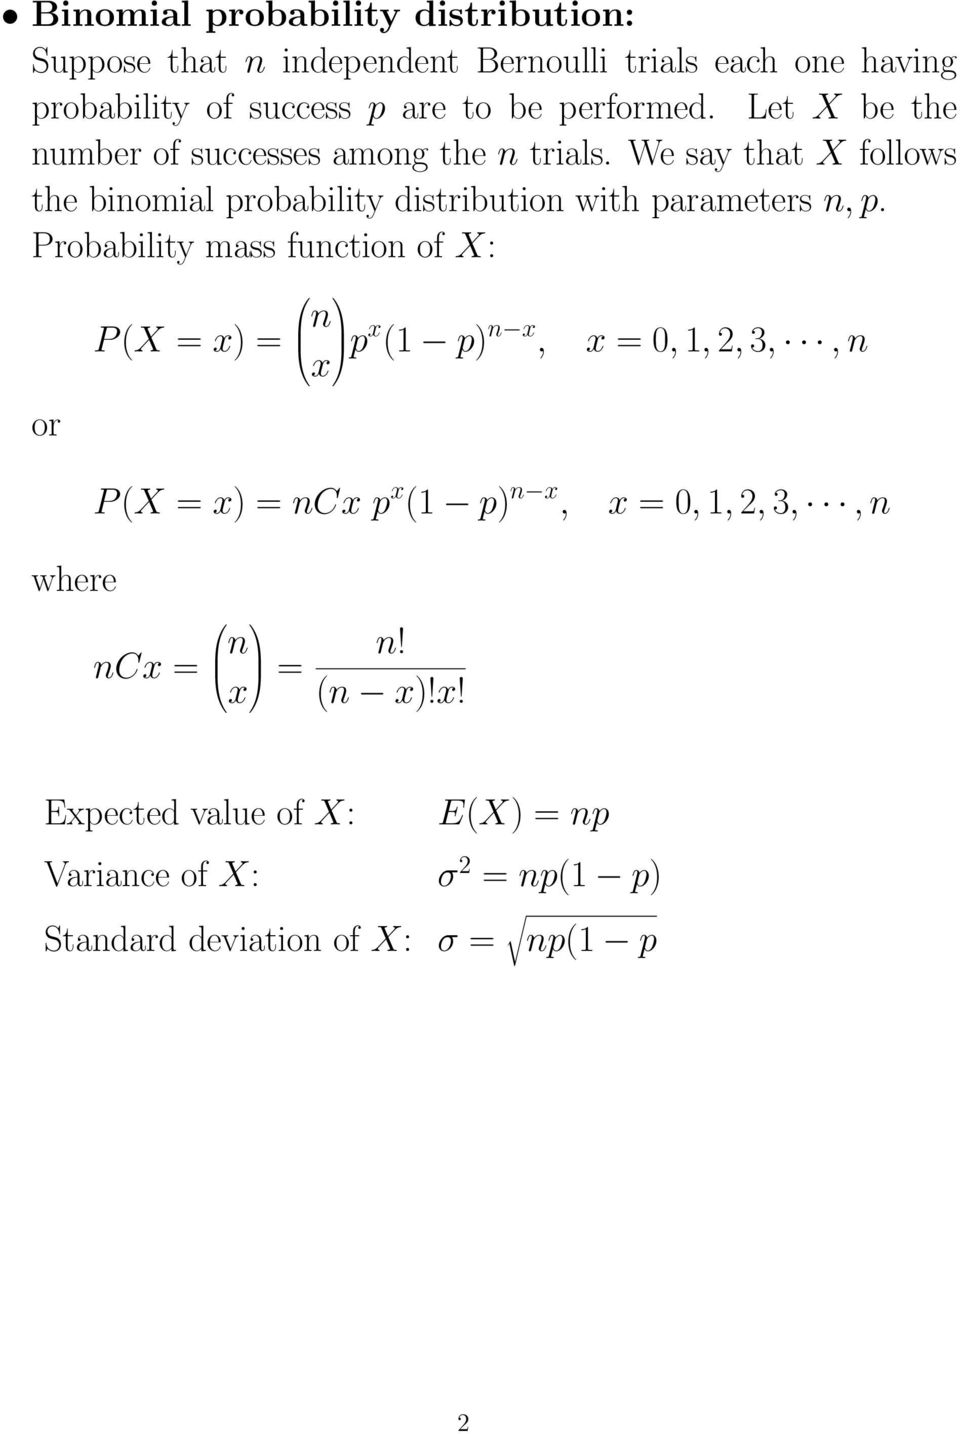 We say that X follows the binomial probability distribution with parameters n, p.